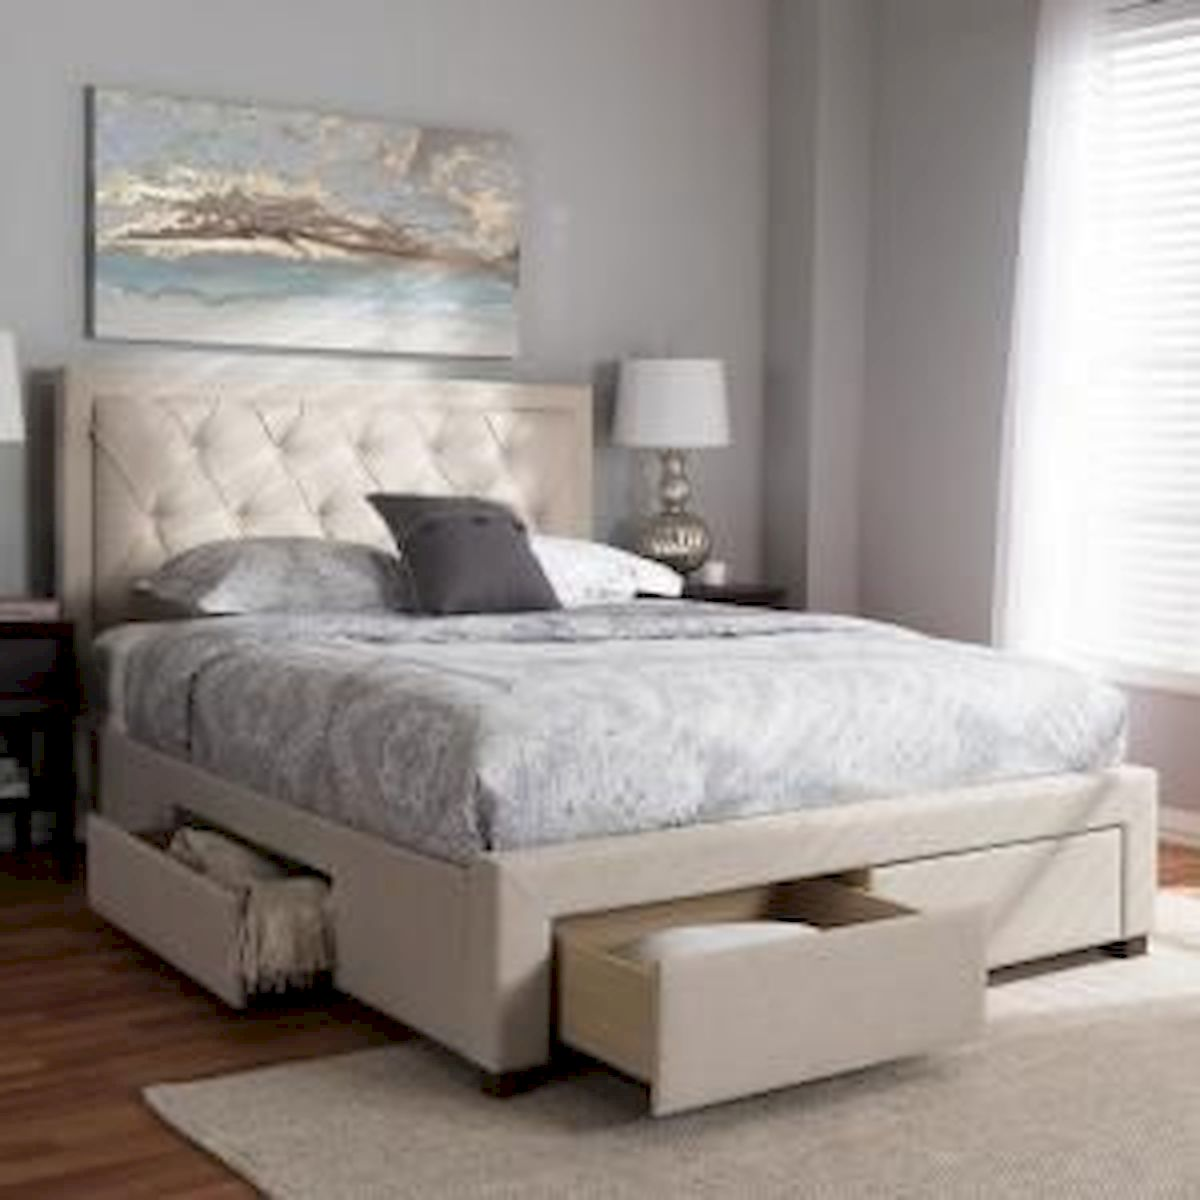 60 Brilliant Space Saving Ideas For Small Bedroom (4)